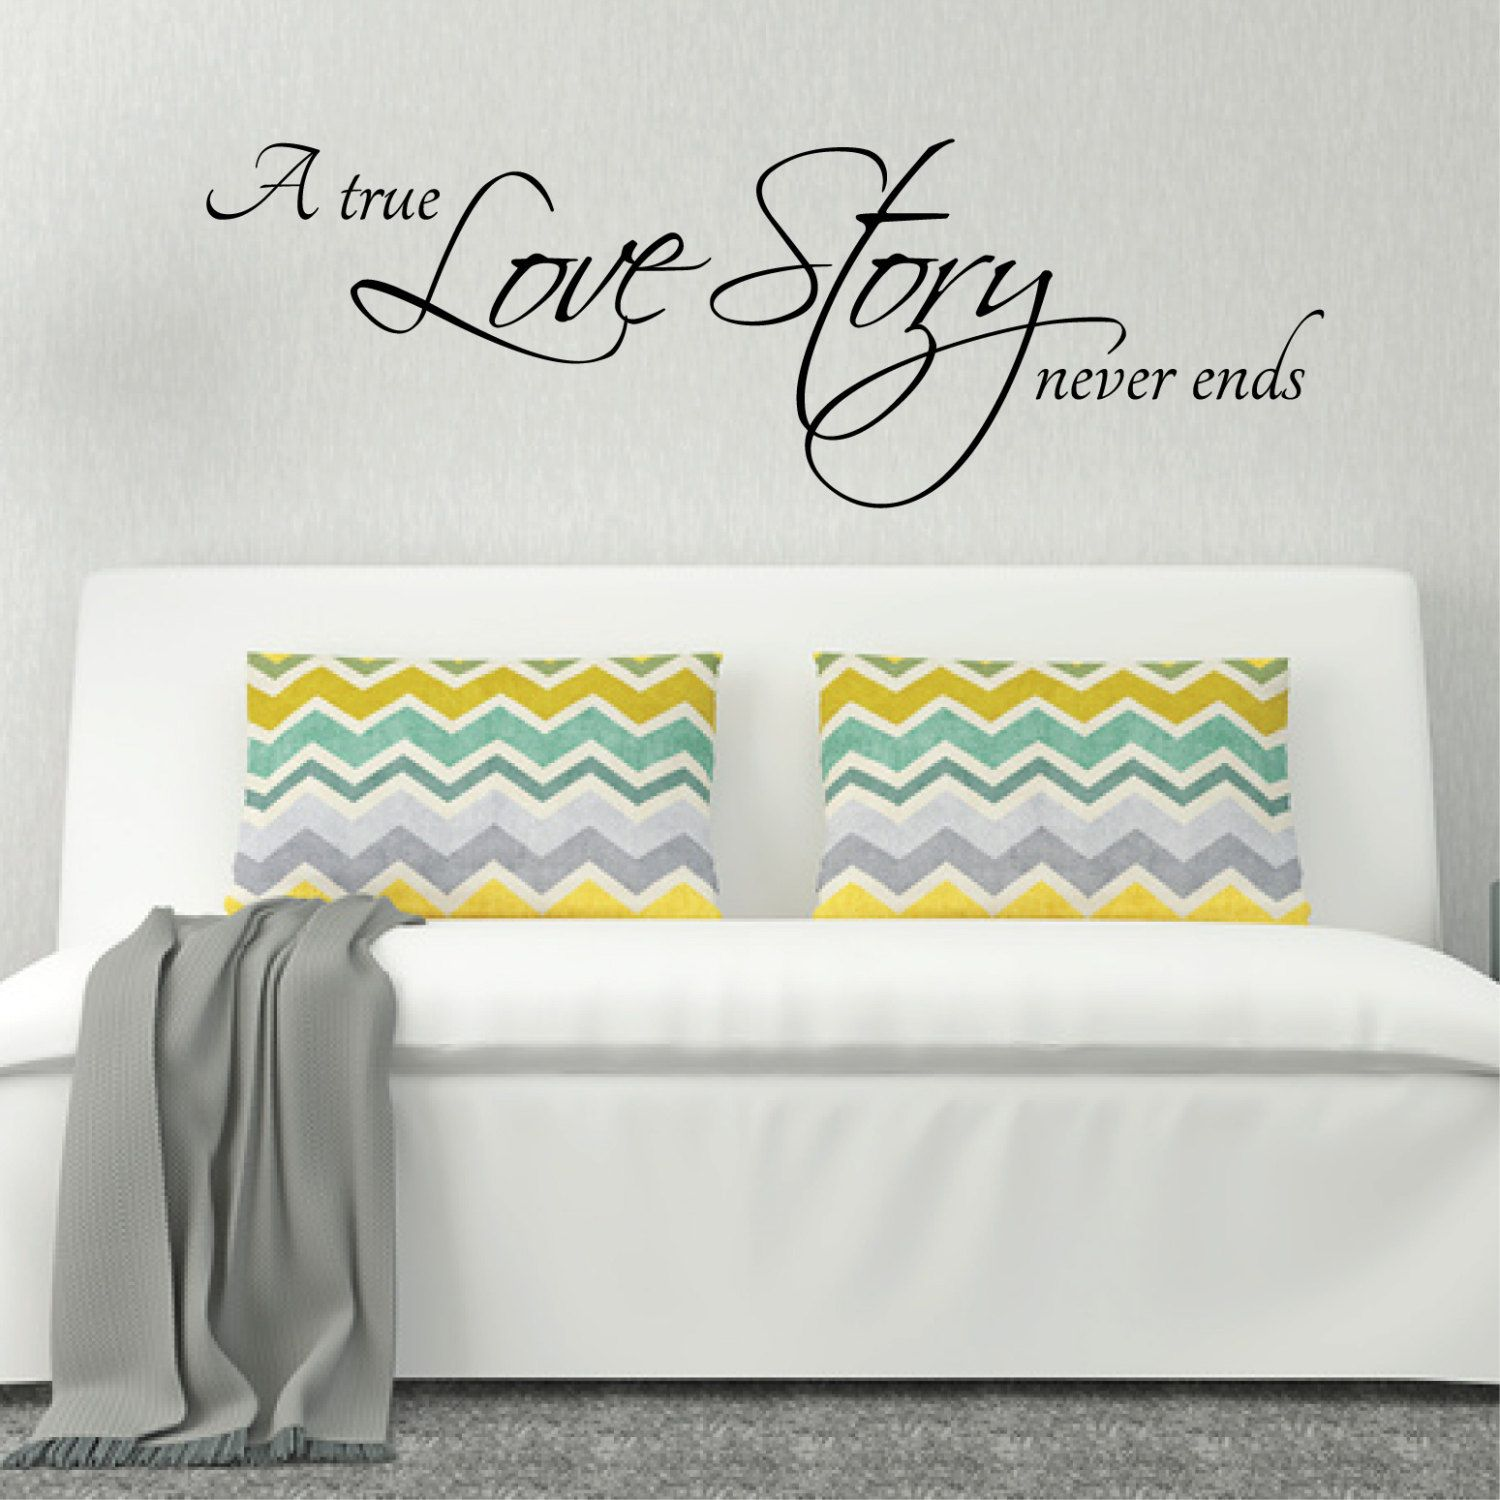 Above bed wall sticker love quote a true love story never ends l above bed wall sticker love quote a true love story never ends l over bed amipublicfo Choice Image